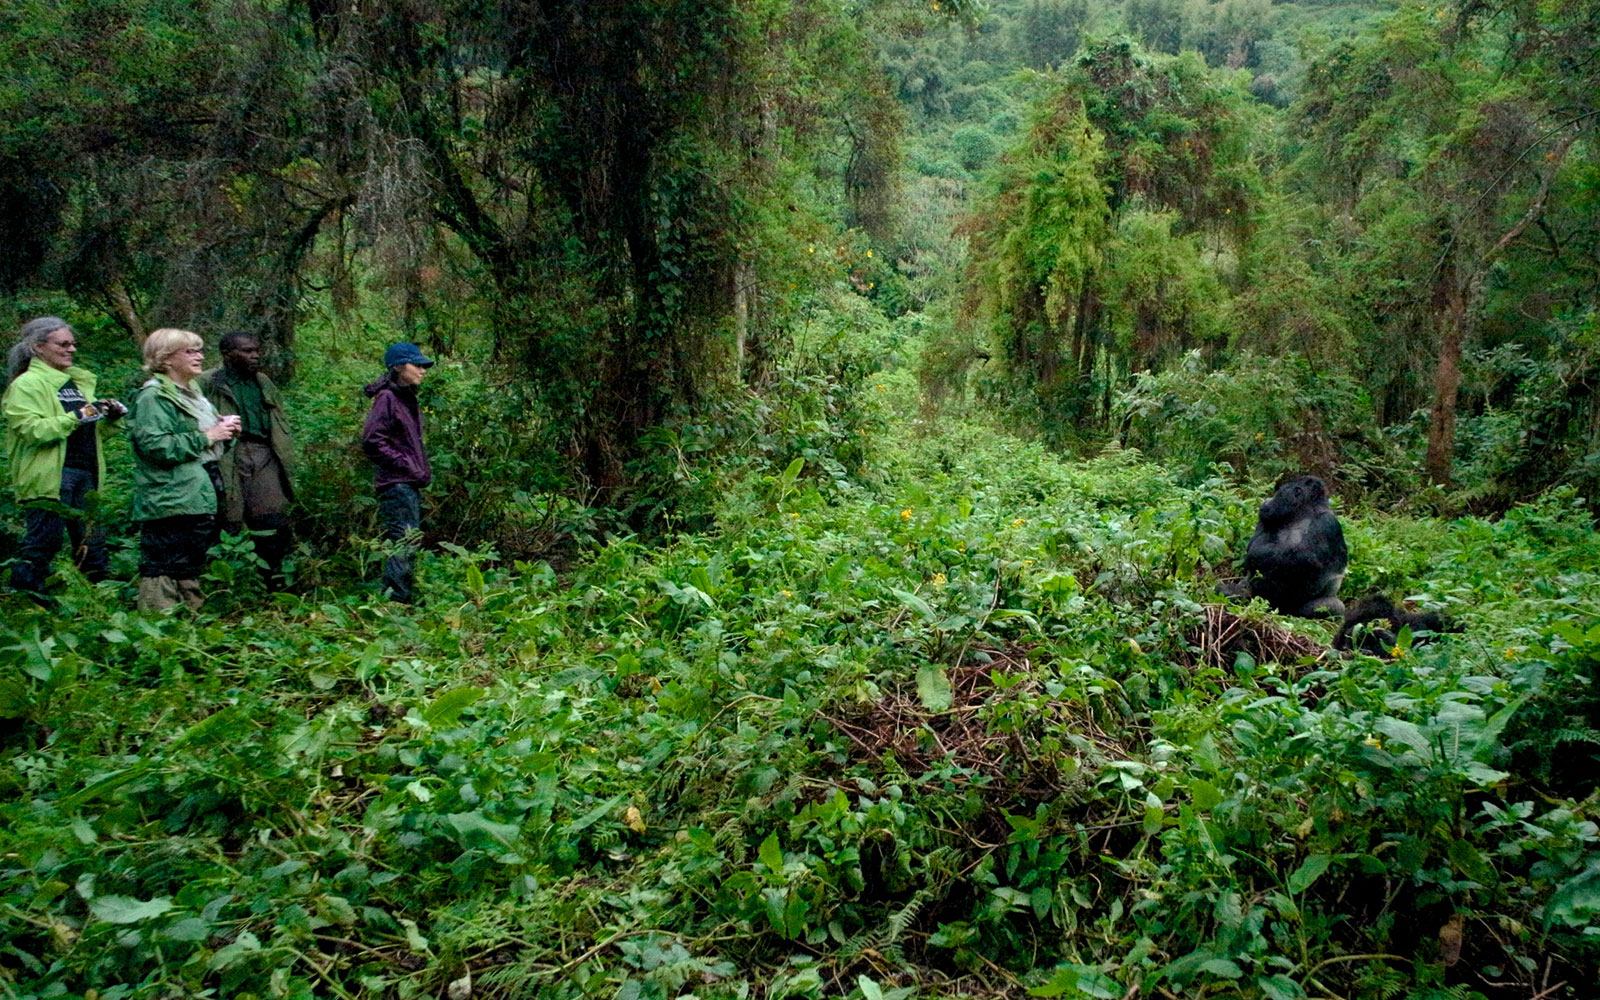 Trek Rwanda's forests in search of endangered silverback gorillas